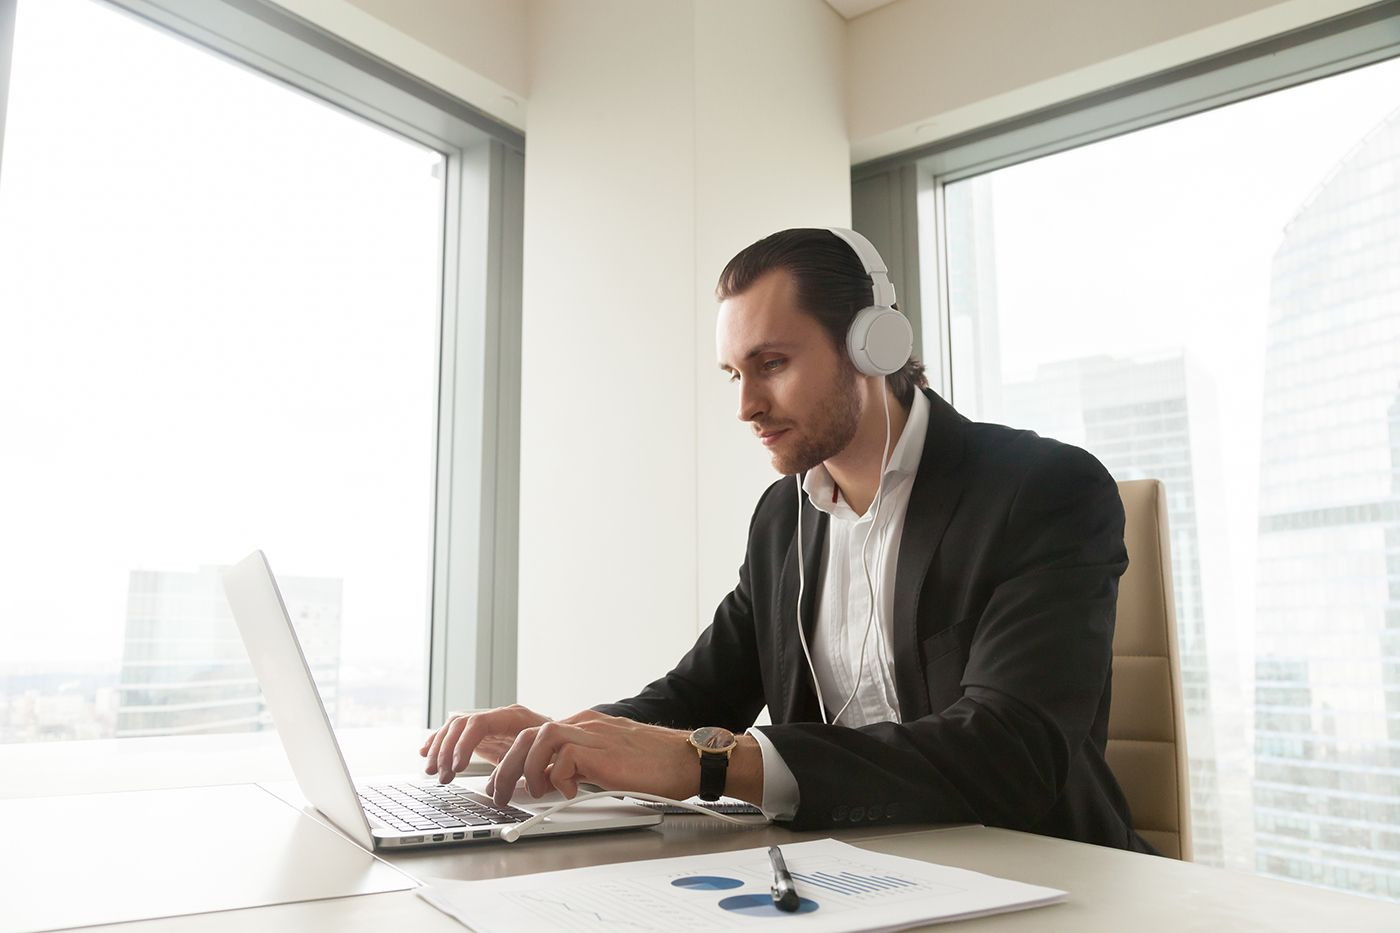 This man is following online meeting etiquette: Using headphones in a quiet, professional setting.